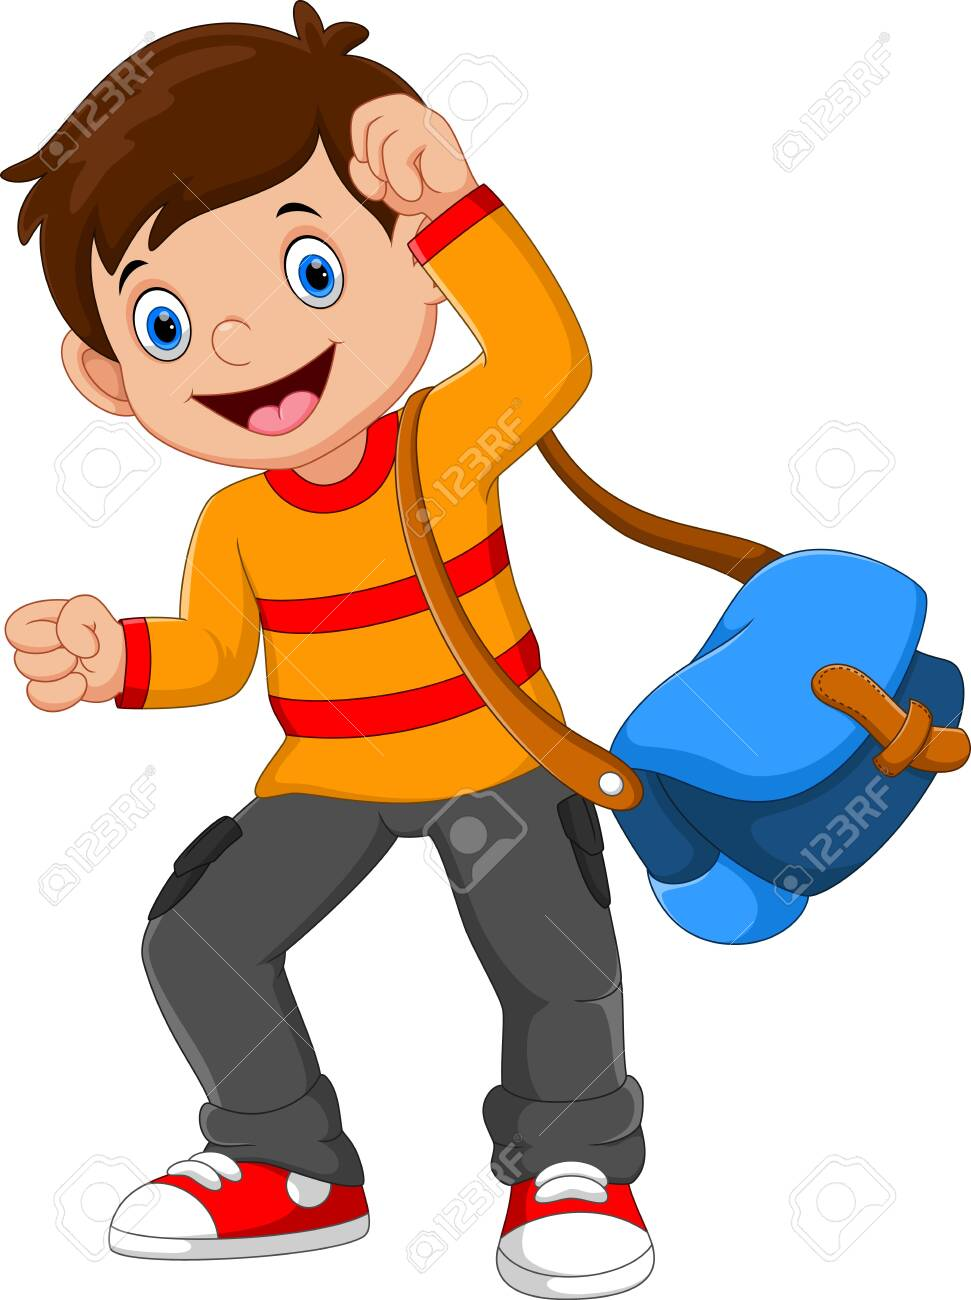 Vector illustration of happy school boy isolated on white background - 133058552